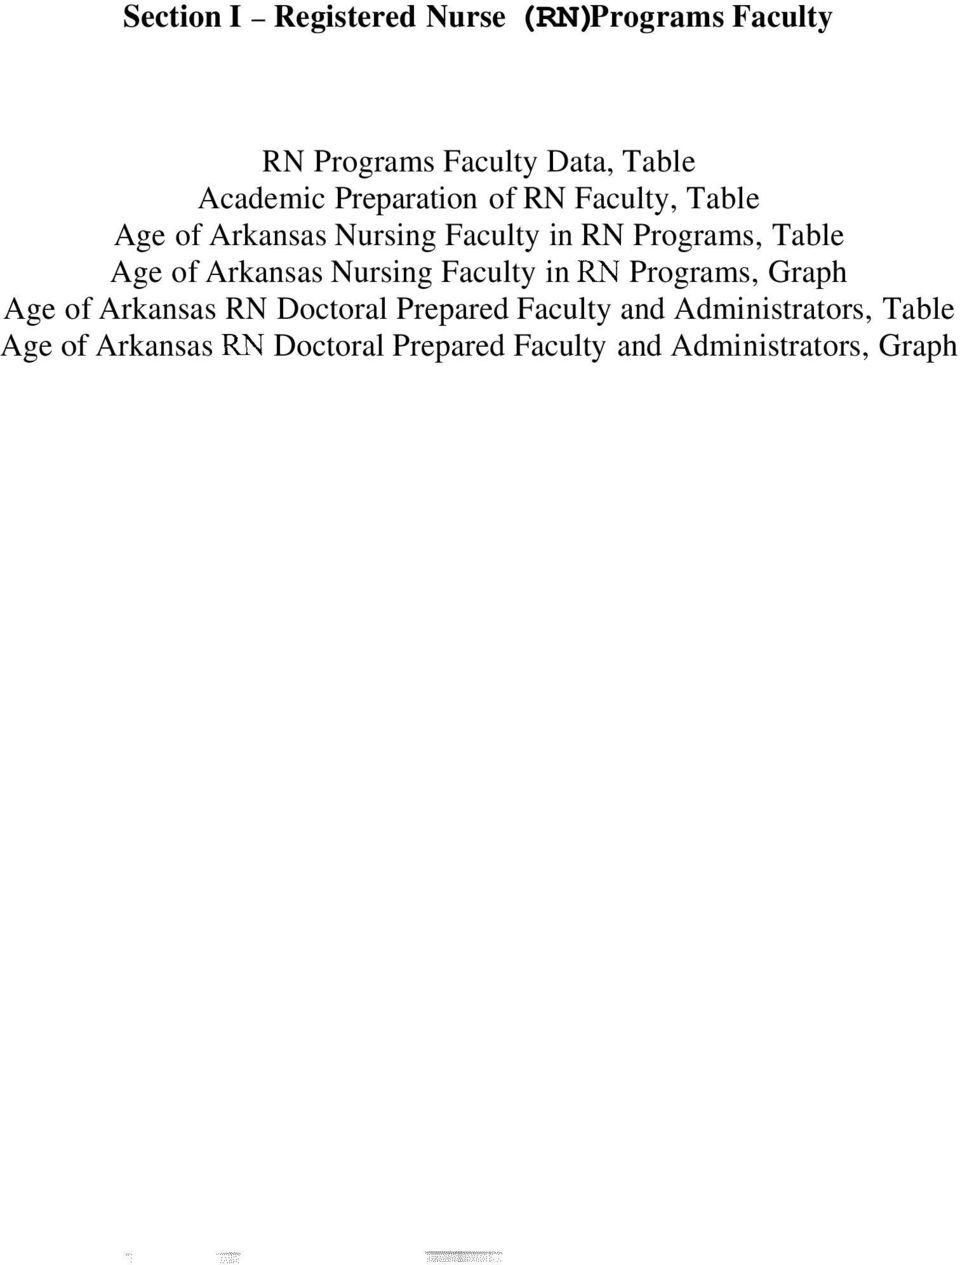 Arkansas Nursing Faculty in RN Programs, Graph Age of Arkansas RN Doctoral Prepared Faculty